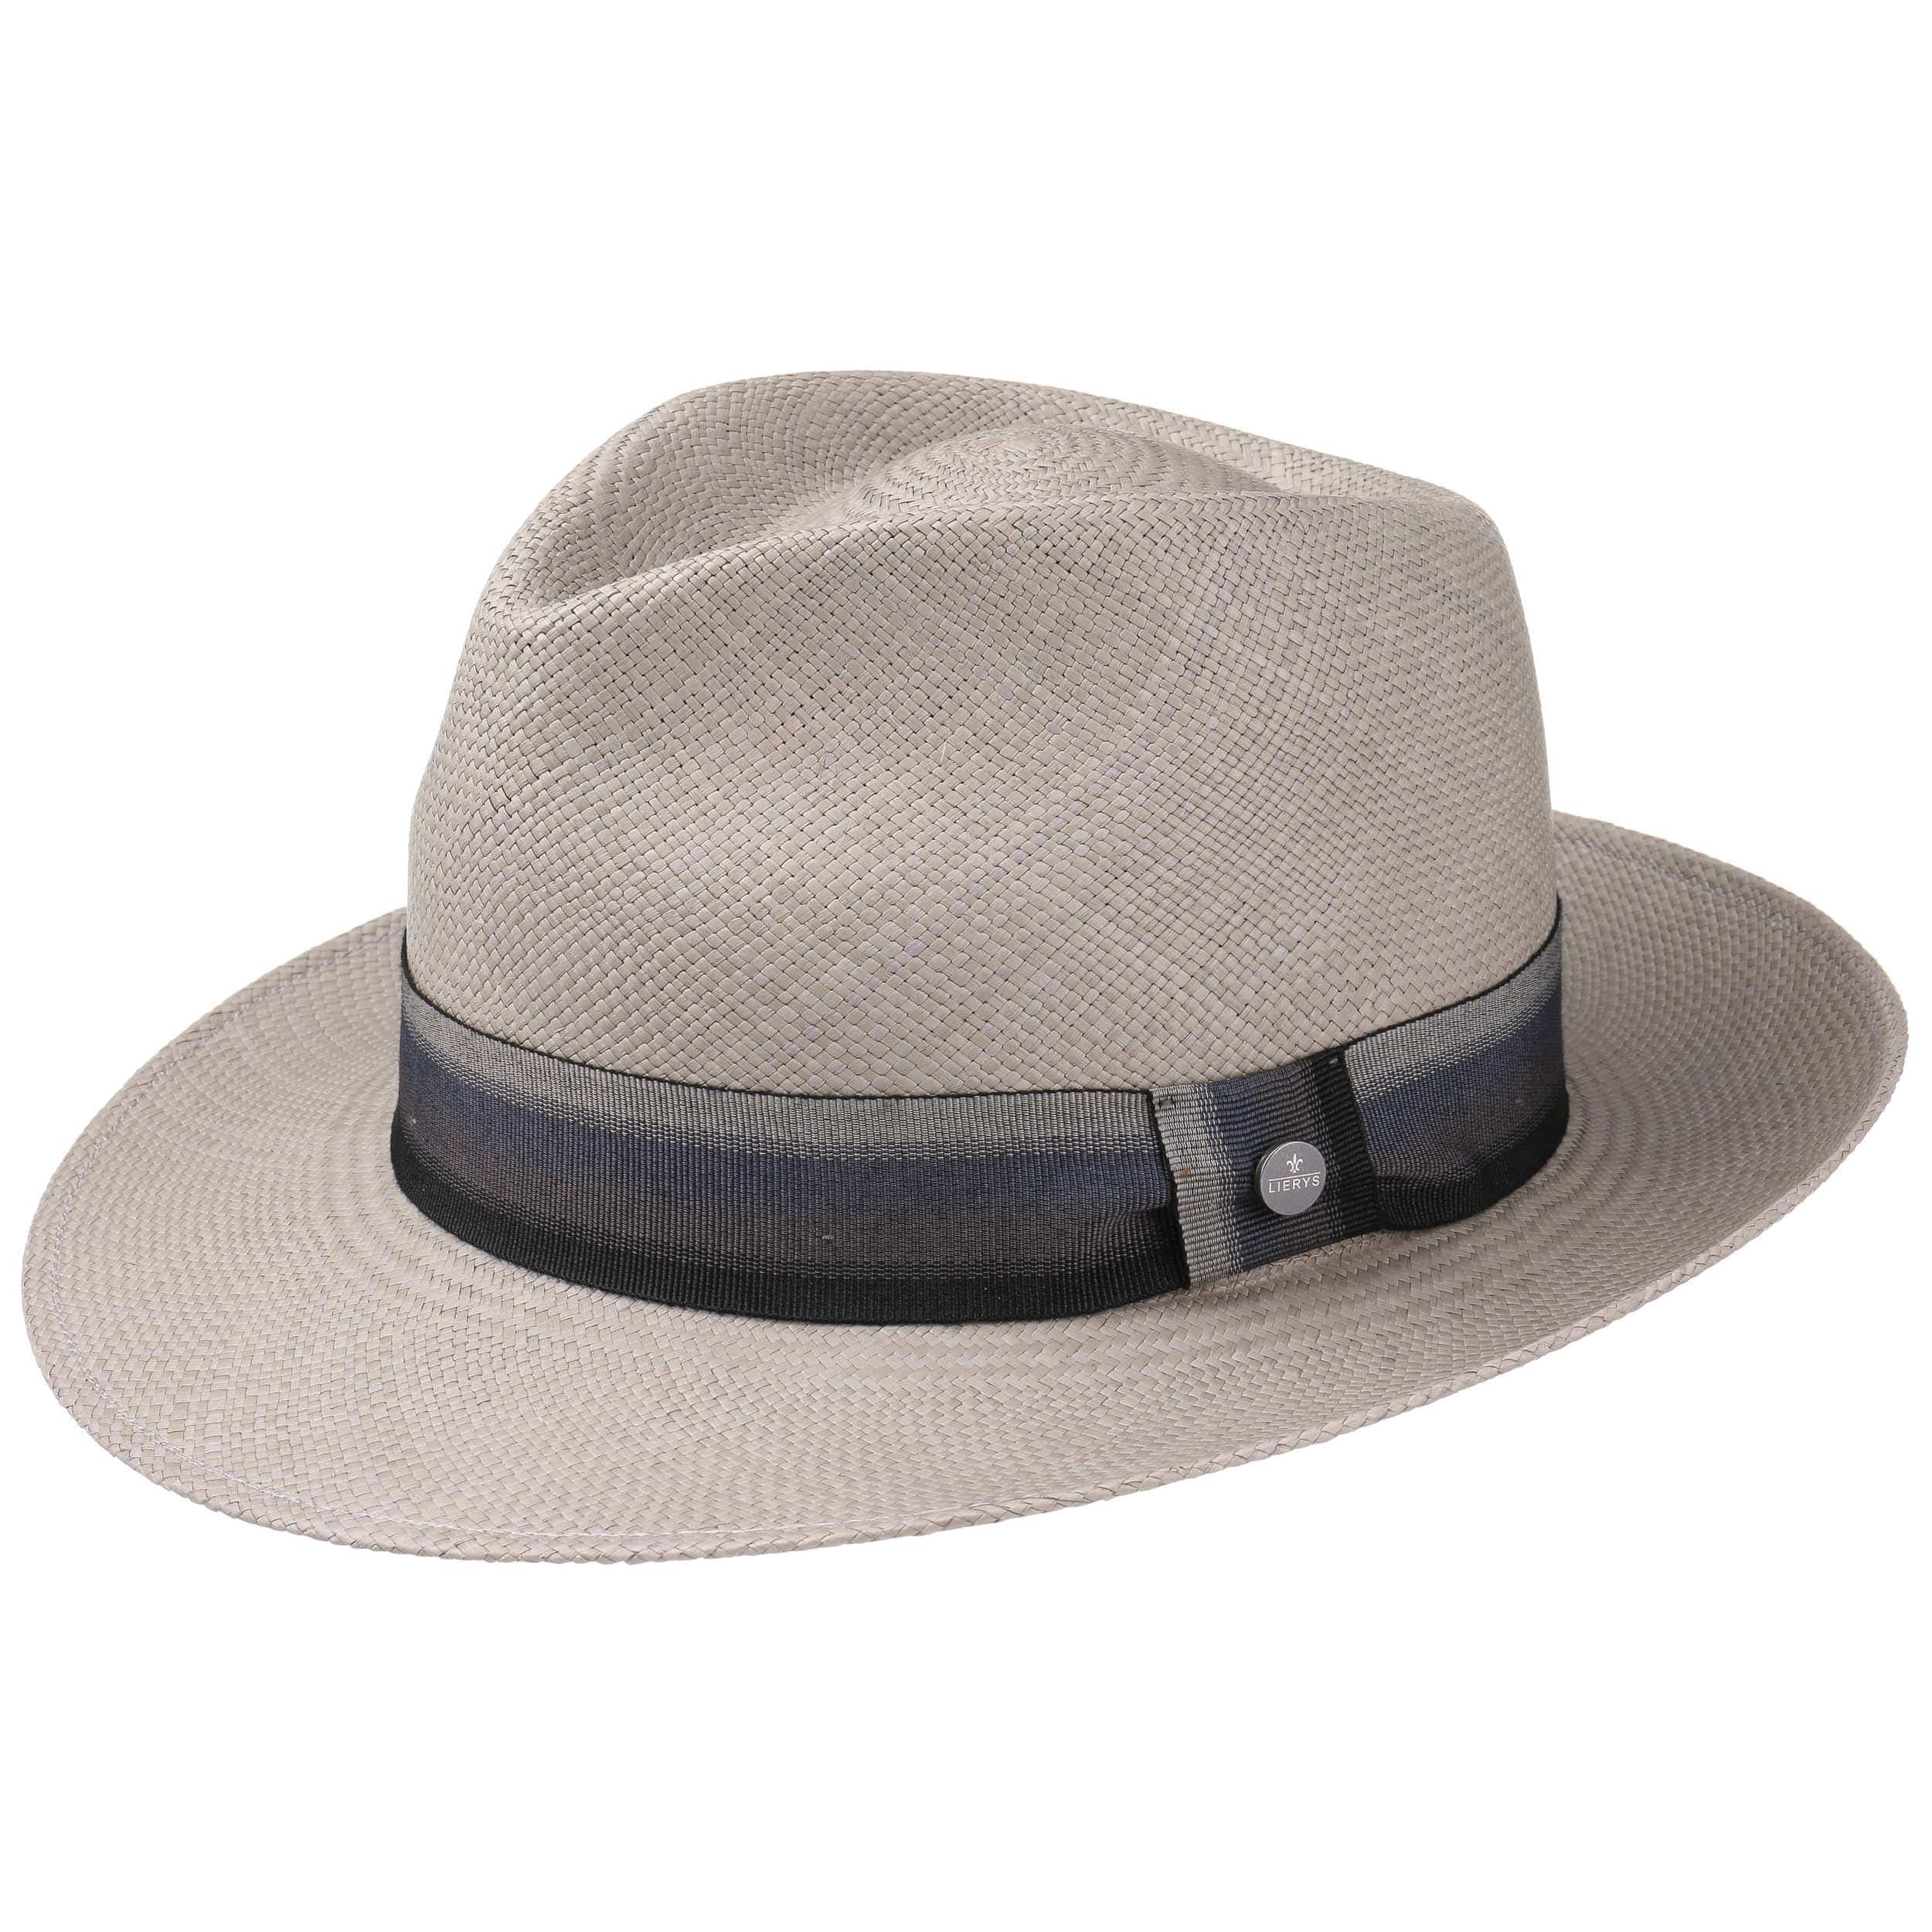 View Blue Traveller Panama Hat by Lierys Sun hats Lierys Manchester Great Sale Clearance Free Shipping X3B0P3ozd